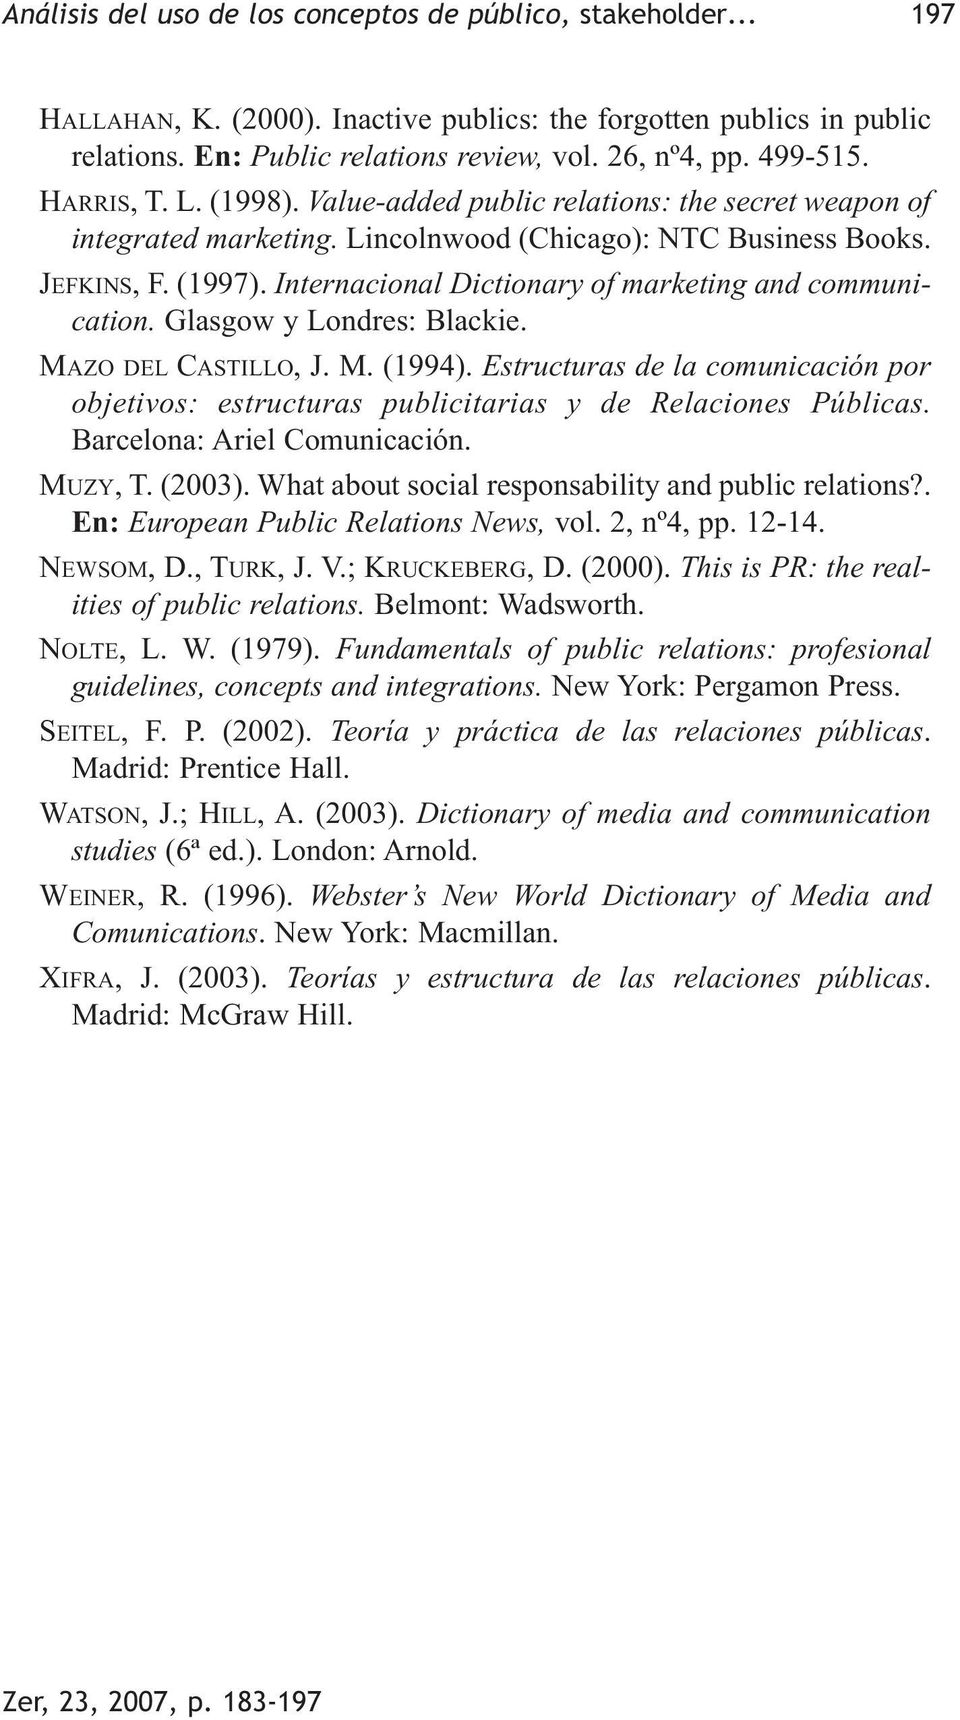 Internacional Dictionary of marketing and communication. Glasgow y Londres: Blackie. MAZO DEL CASTILLO, J. M. (1994).